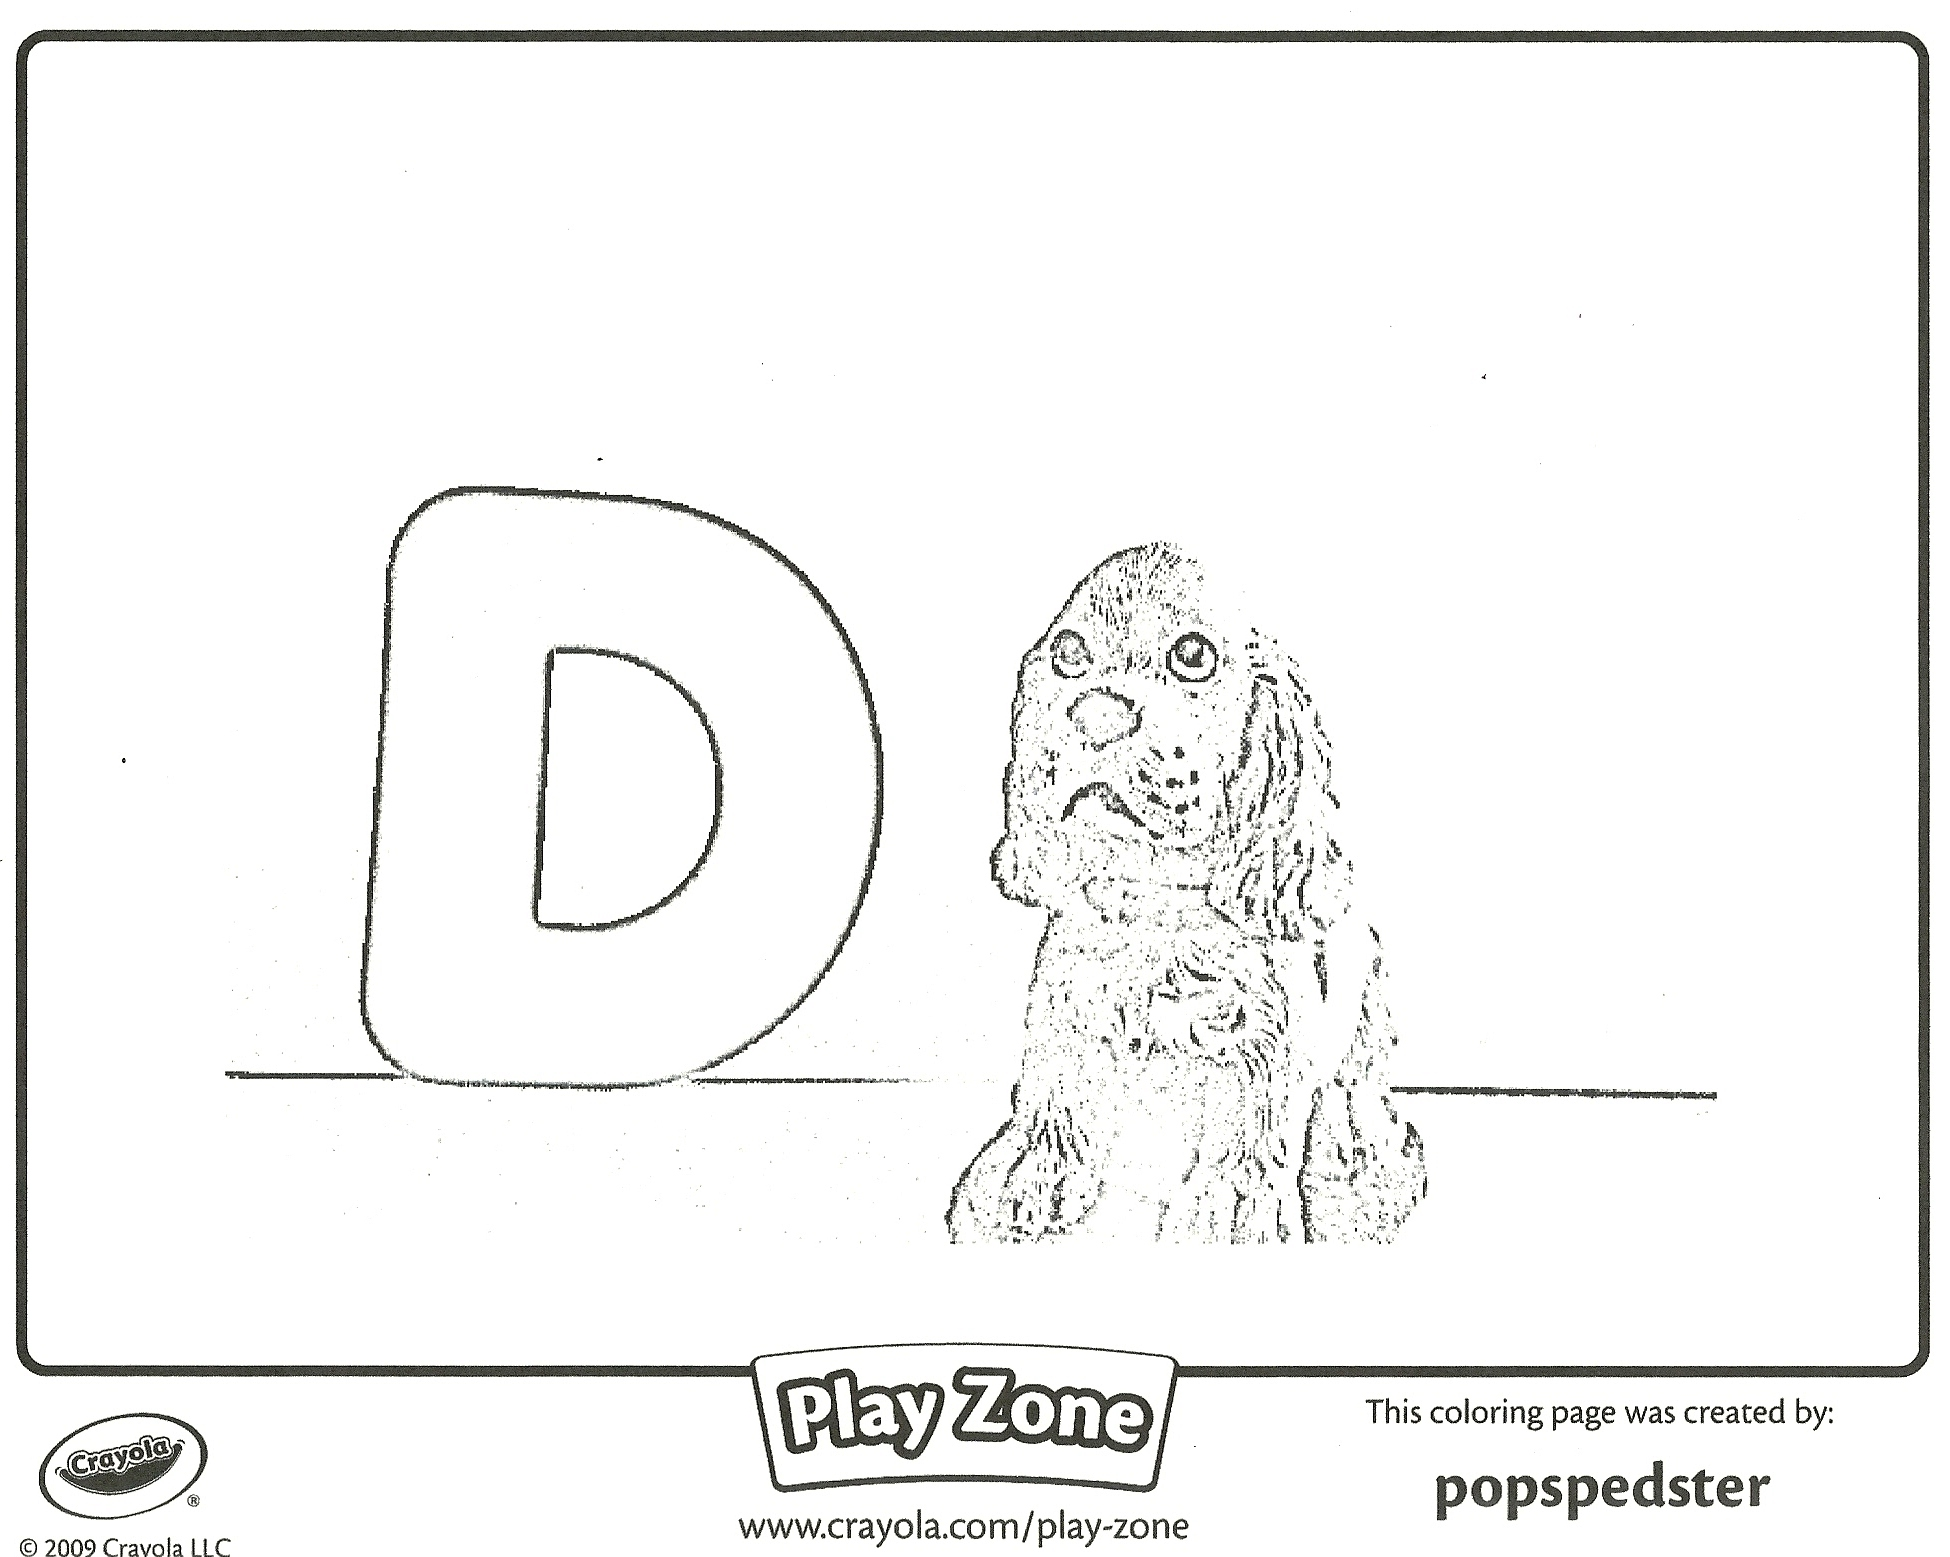 Focusing on the Letter D